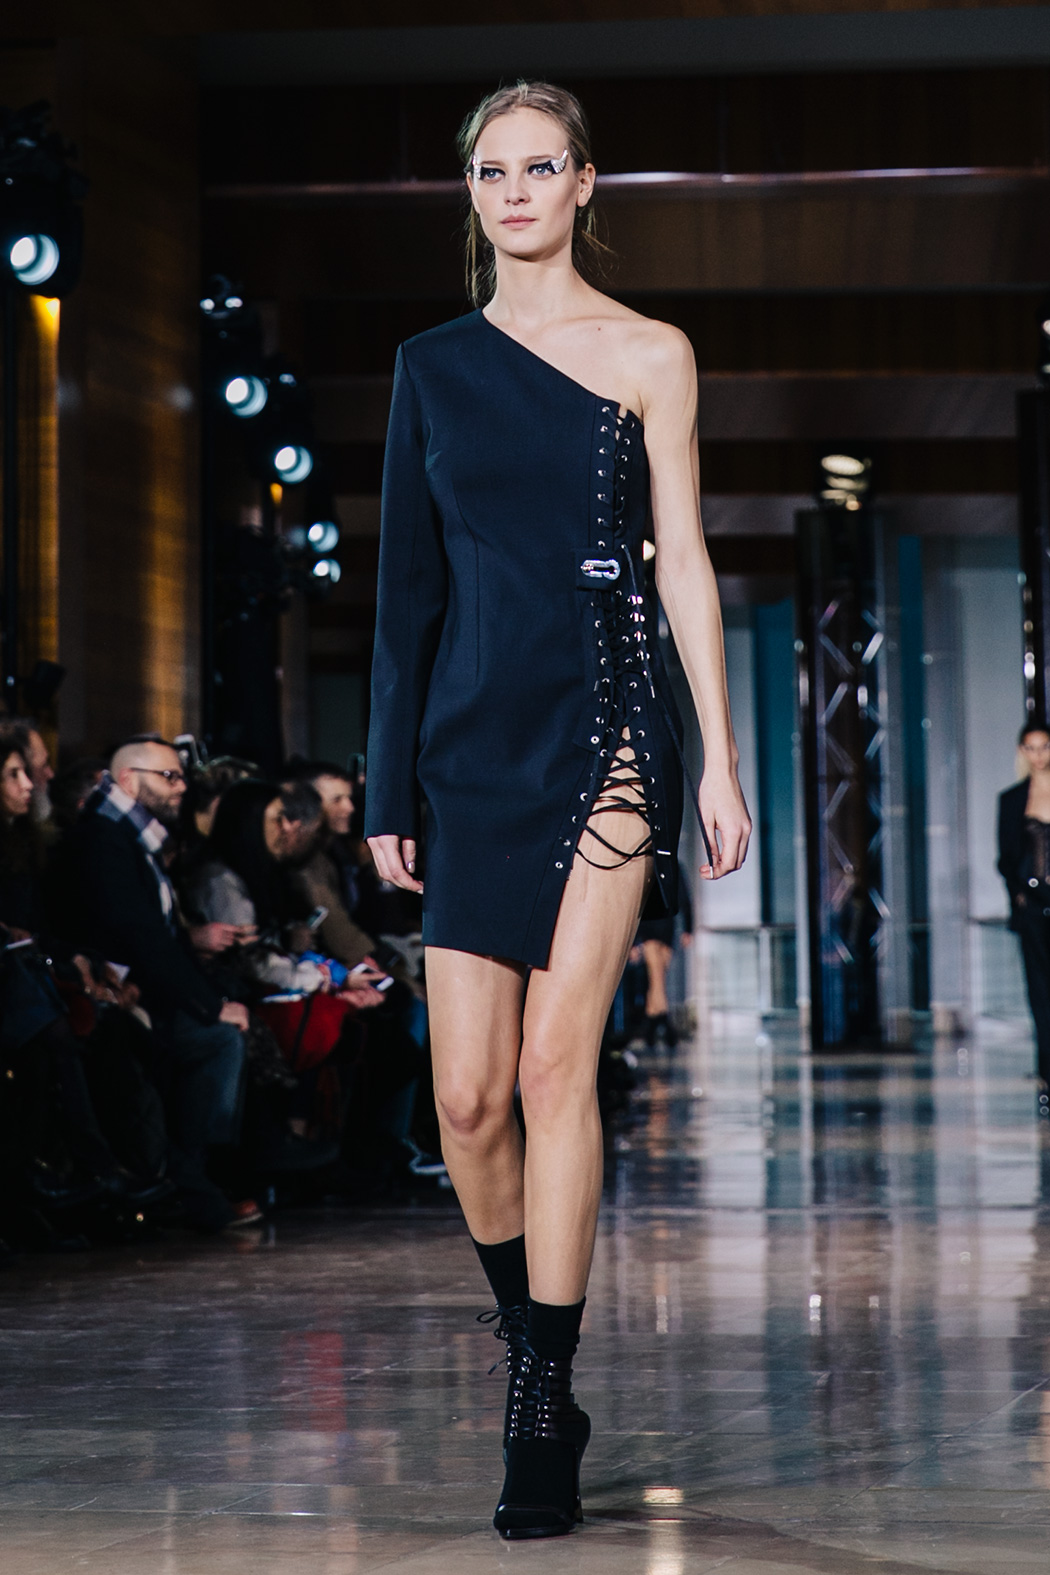 Paris_Fashion_Week-PFW-Anthony_Vaccarello_Fall_2016-Runway-9